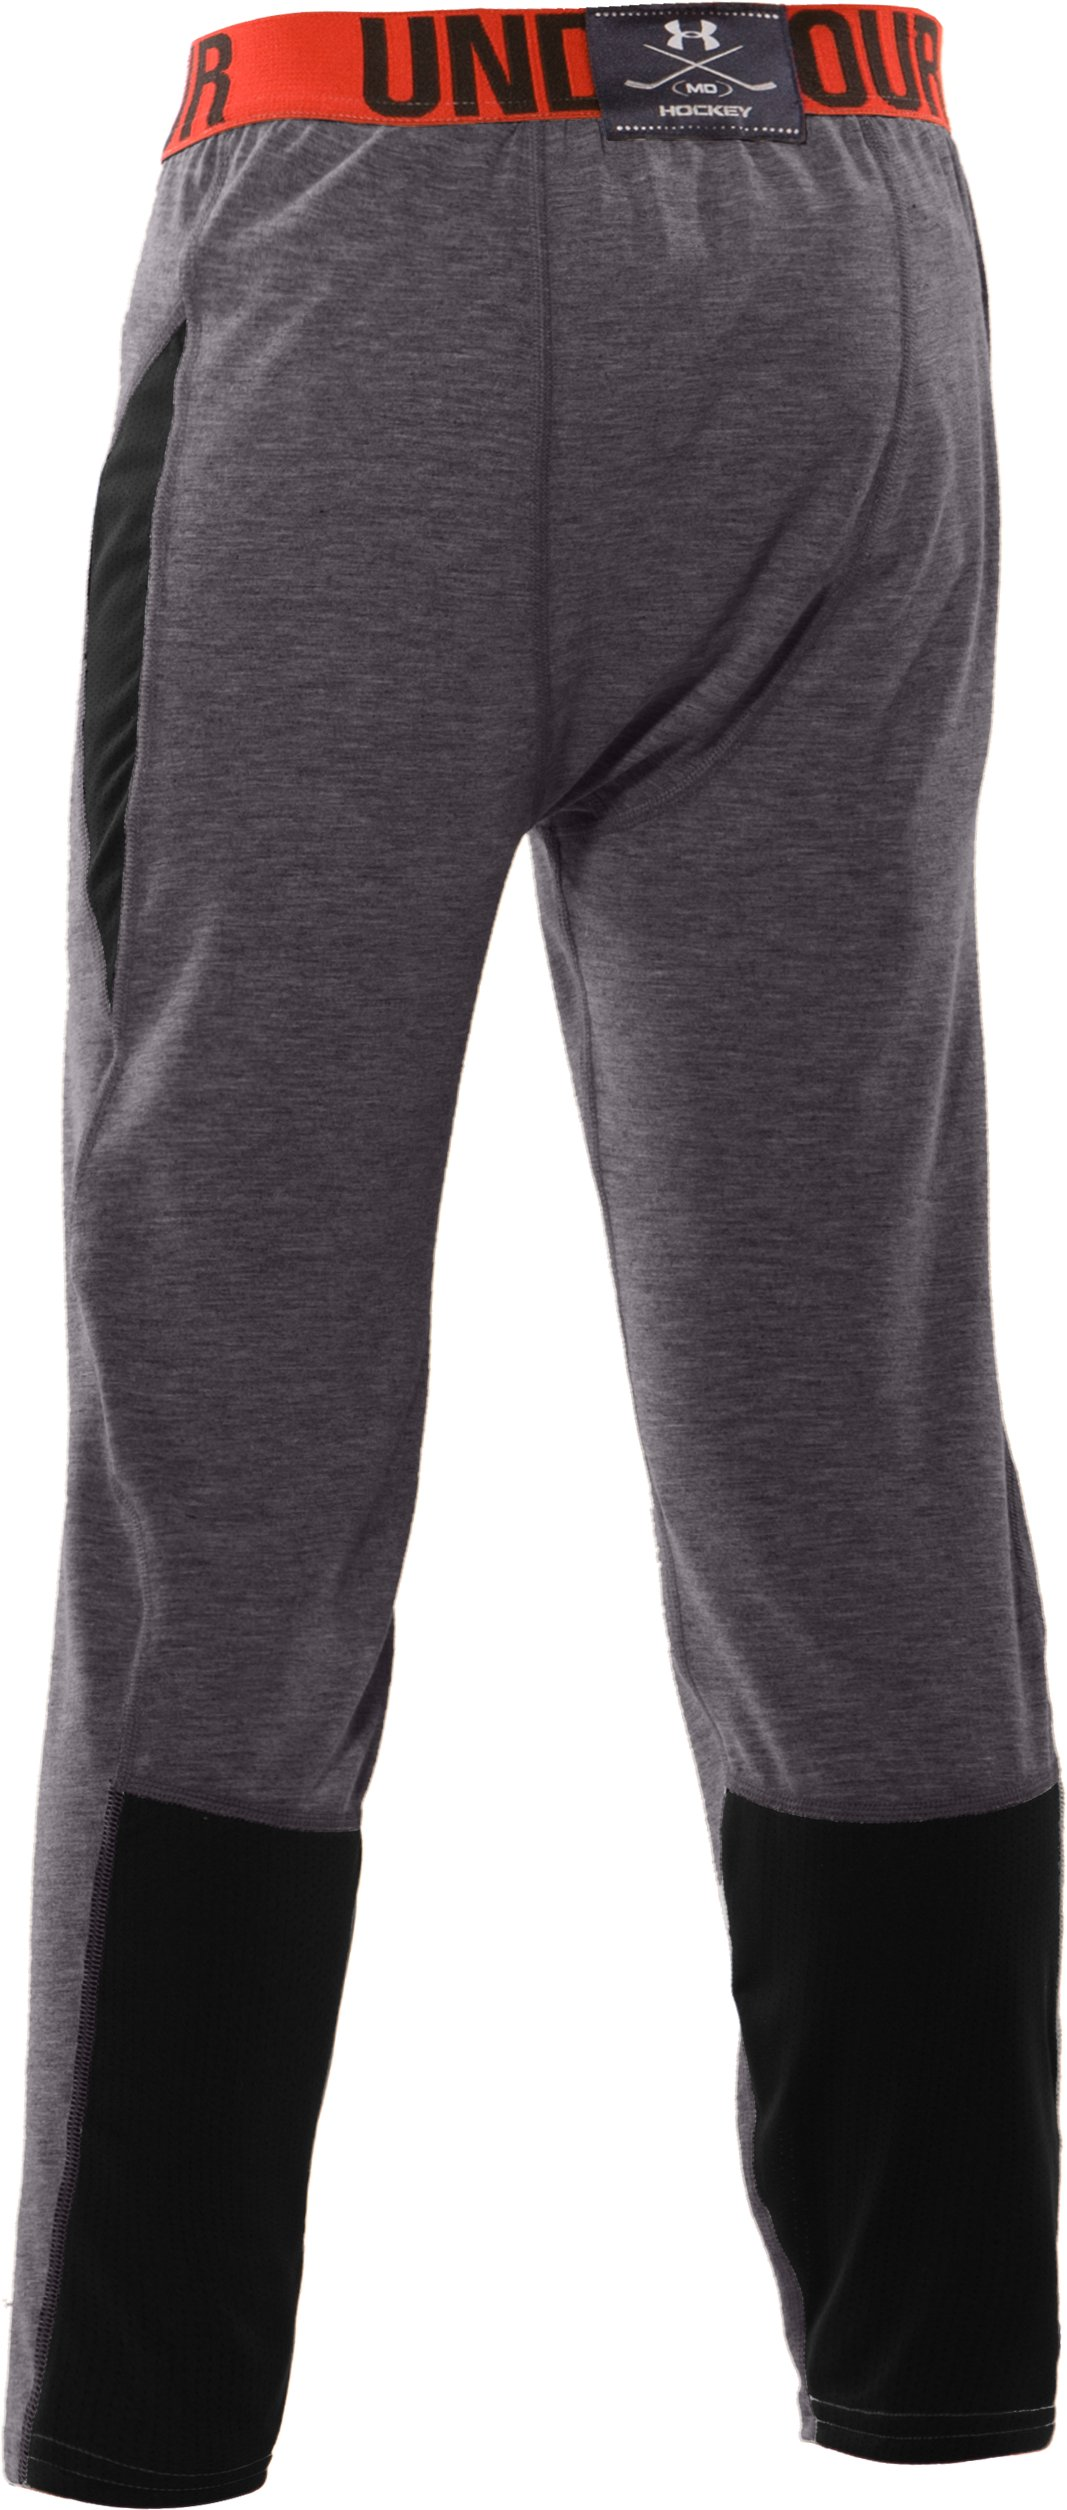 Boys' Hockey UA Tech™ Pants, Carbon Heather, undefined